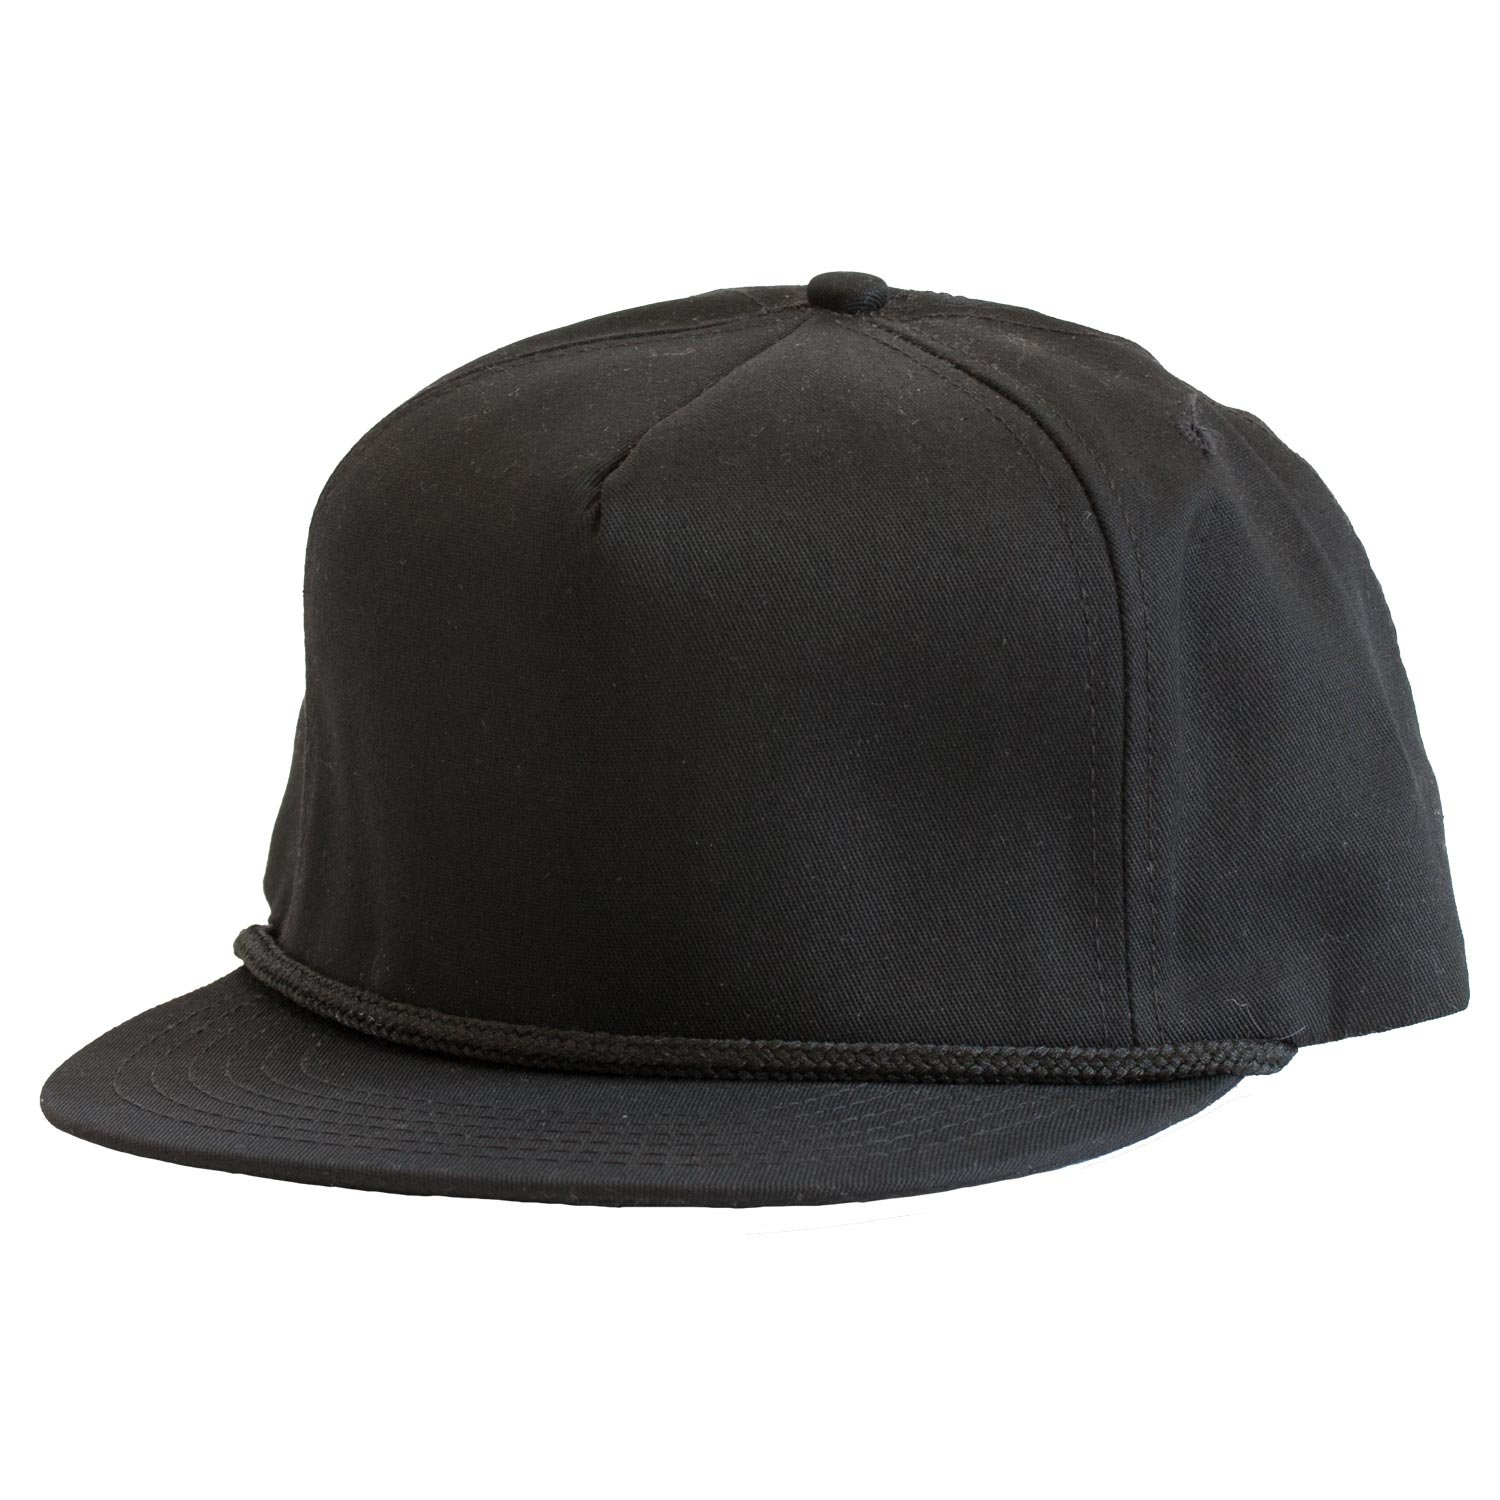 online store 866e3 4b106 Levine Hat Co 100% Cotton Twill Structured Baseball Cap with Rope Accent  Adjustable Size (3+ Colors) (One Size, Black) at Amazon Men s Clothing  store